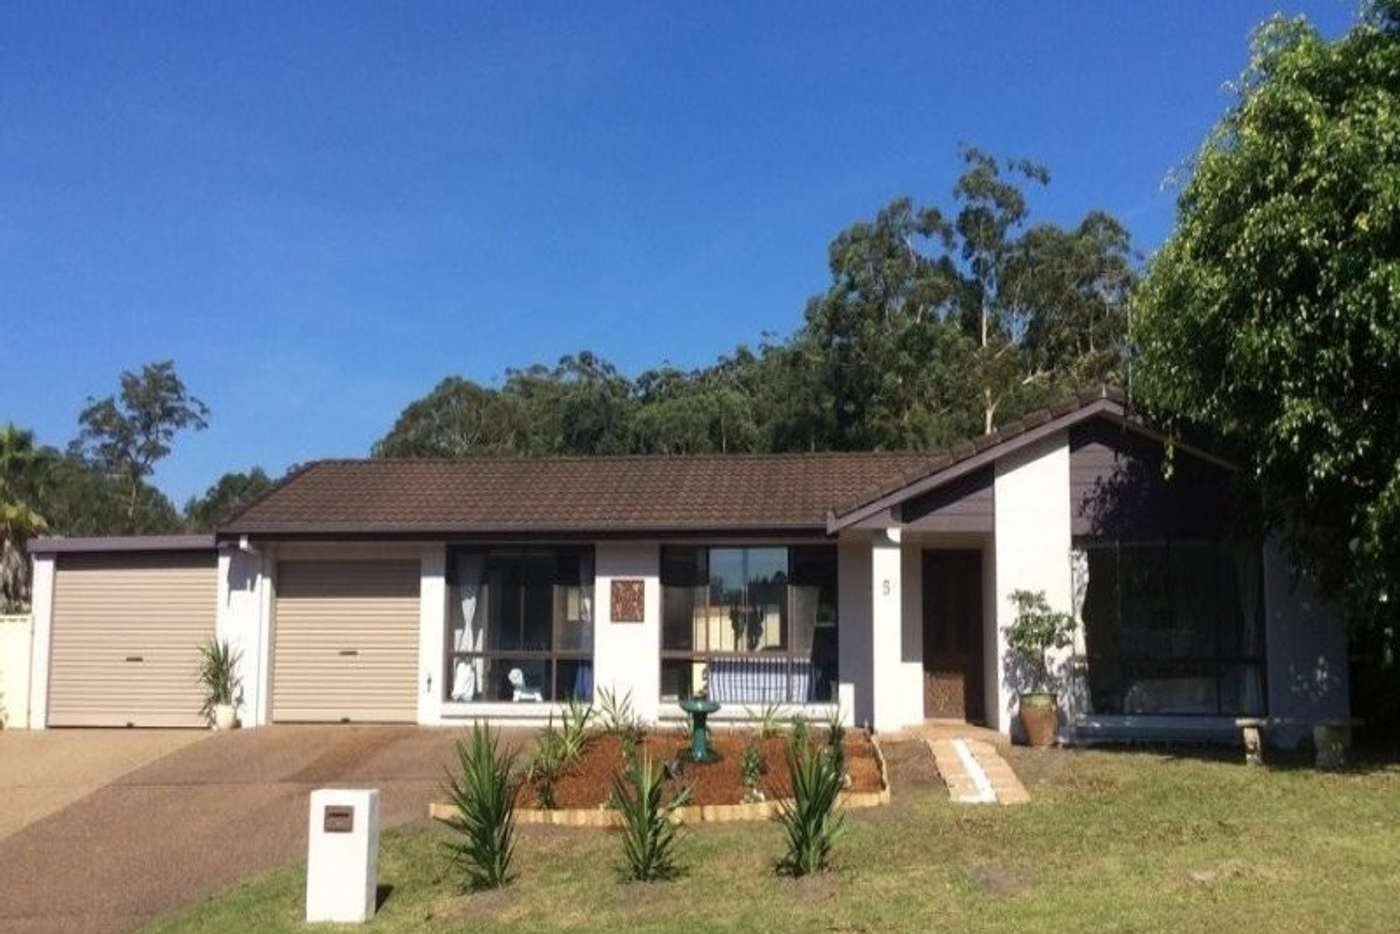 Main view of Homely house listing, 5 Taurus Spur, Narrawallee NSW 2539